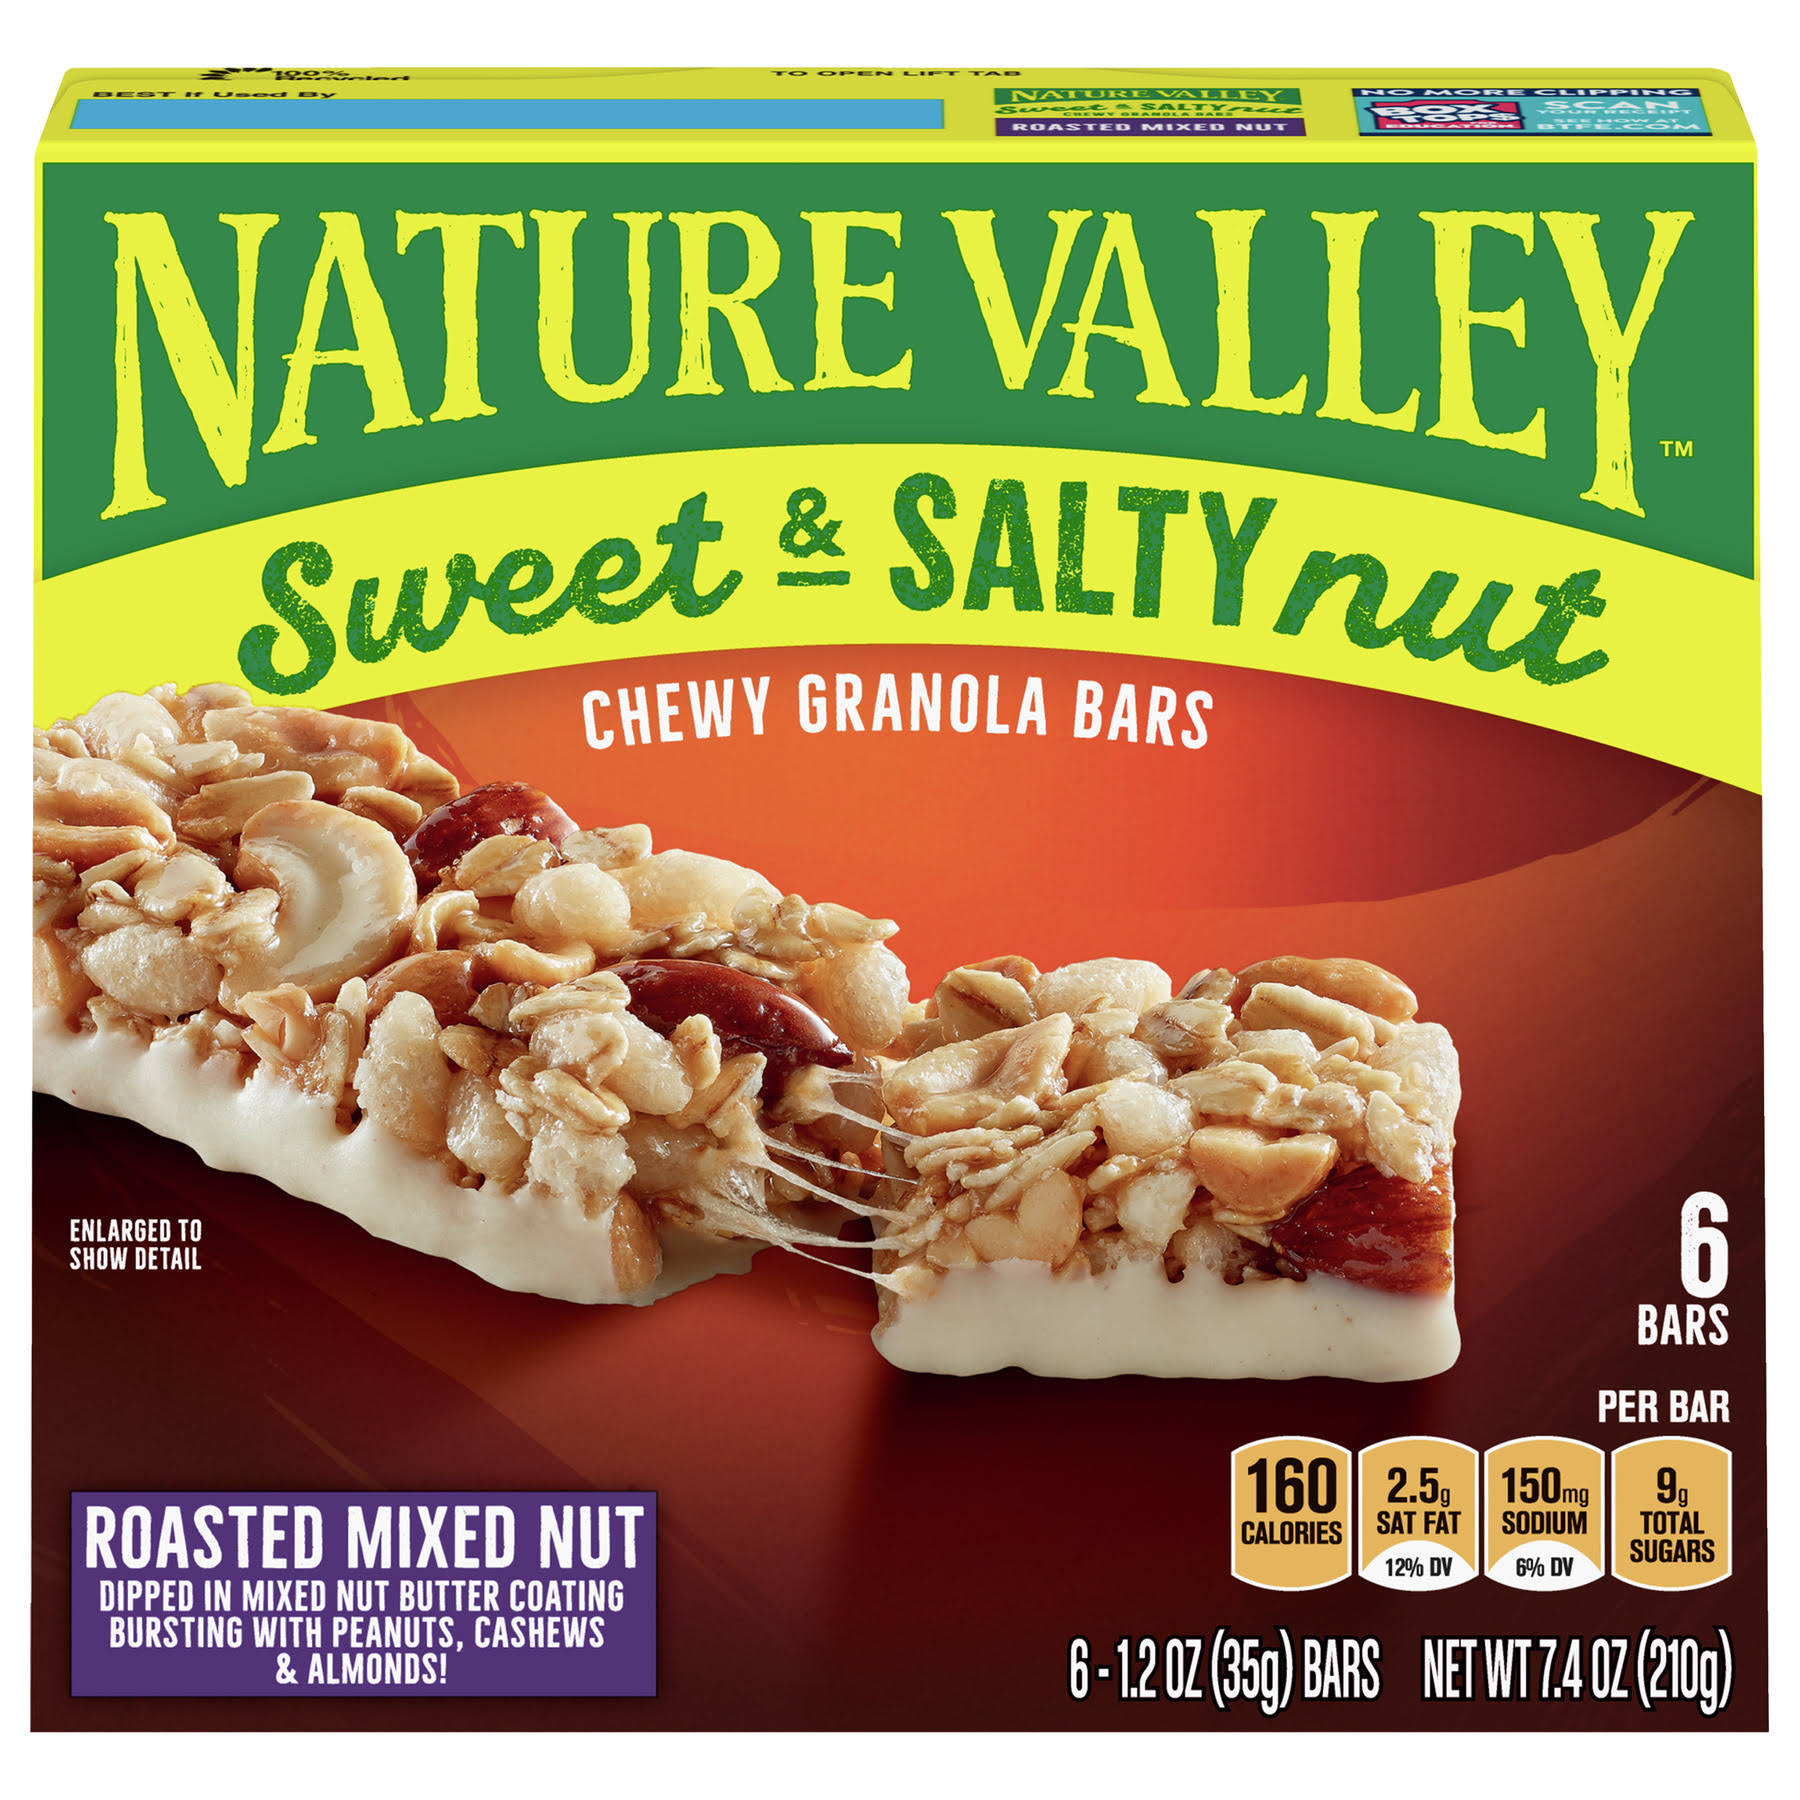 Nature Valley Sweet & Salty Granola Bars - Roasted Mixed Nut, 1.2oz, 6ct